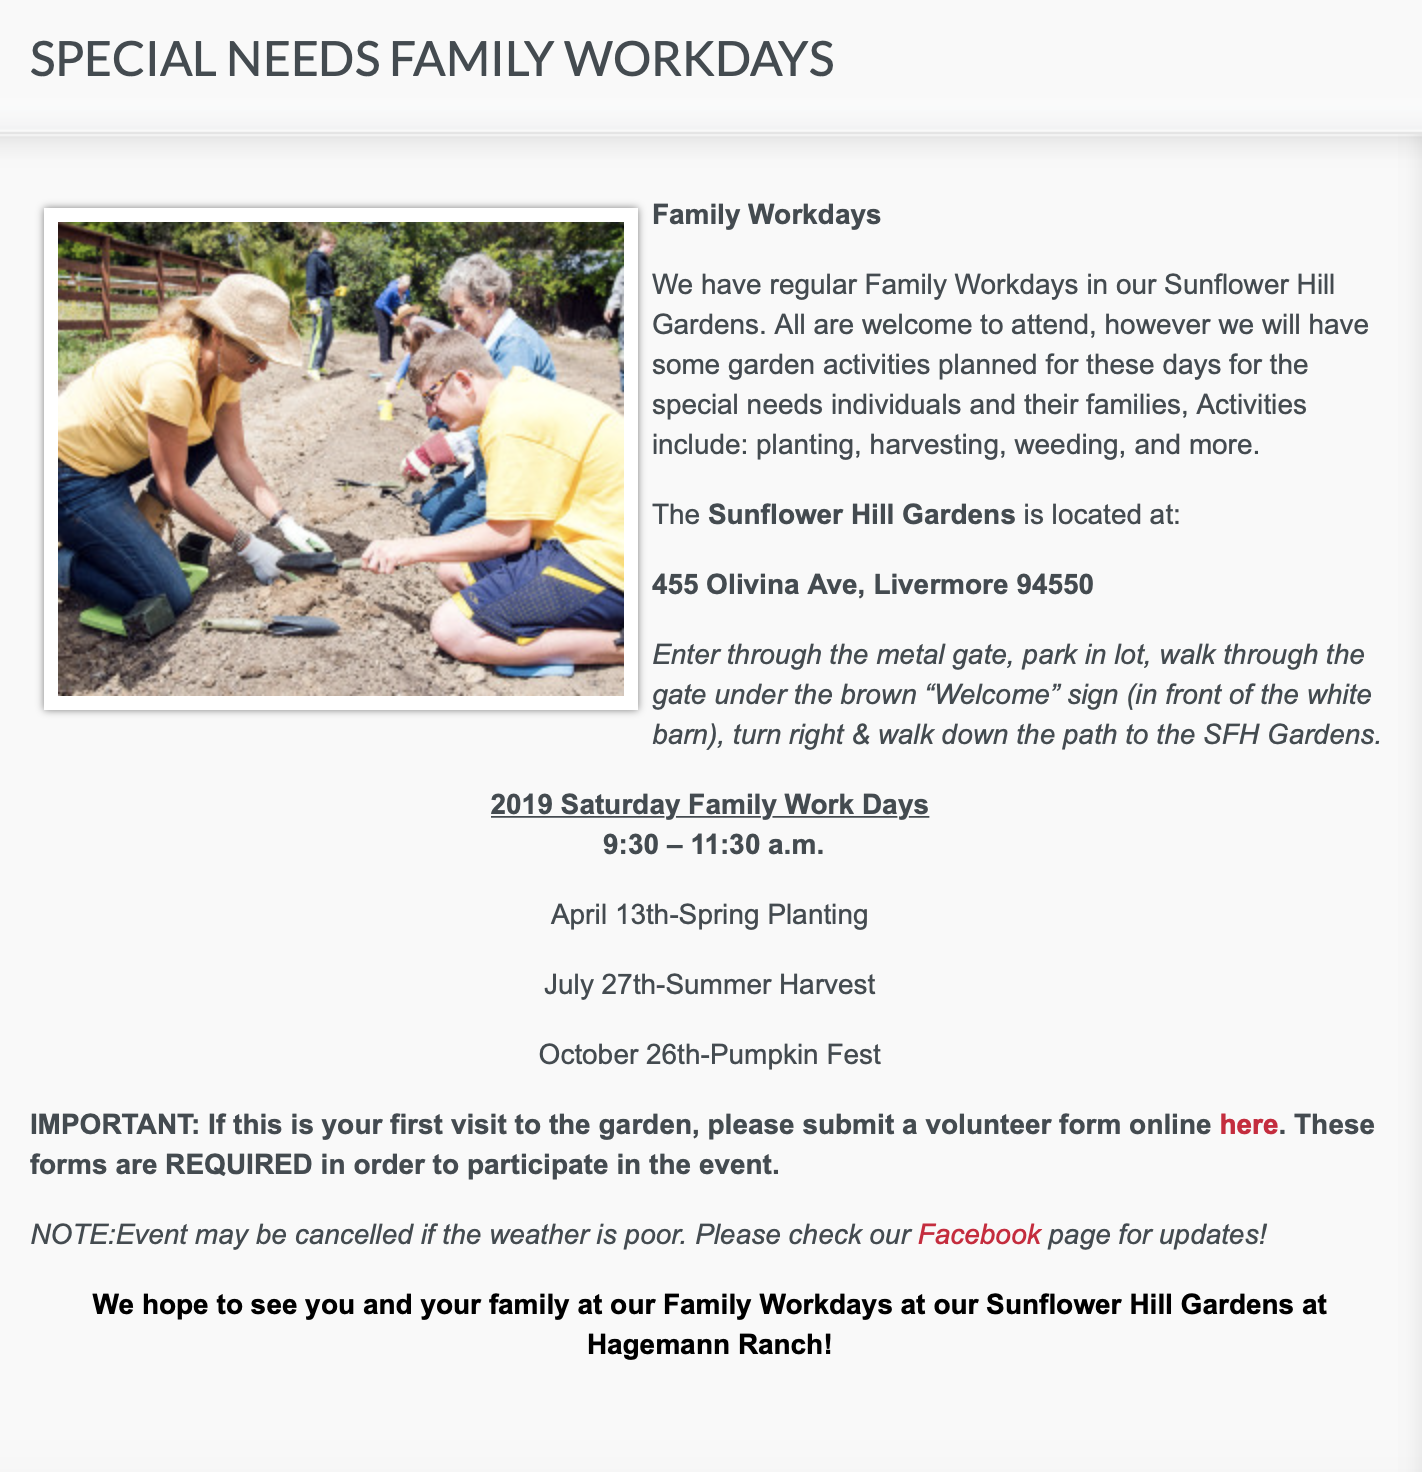 https://sunflowerhill.org/sunflower-hill-gardens/special-needs-family-workdays/